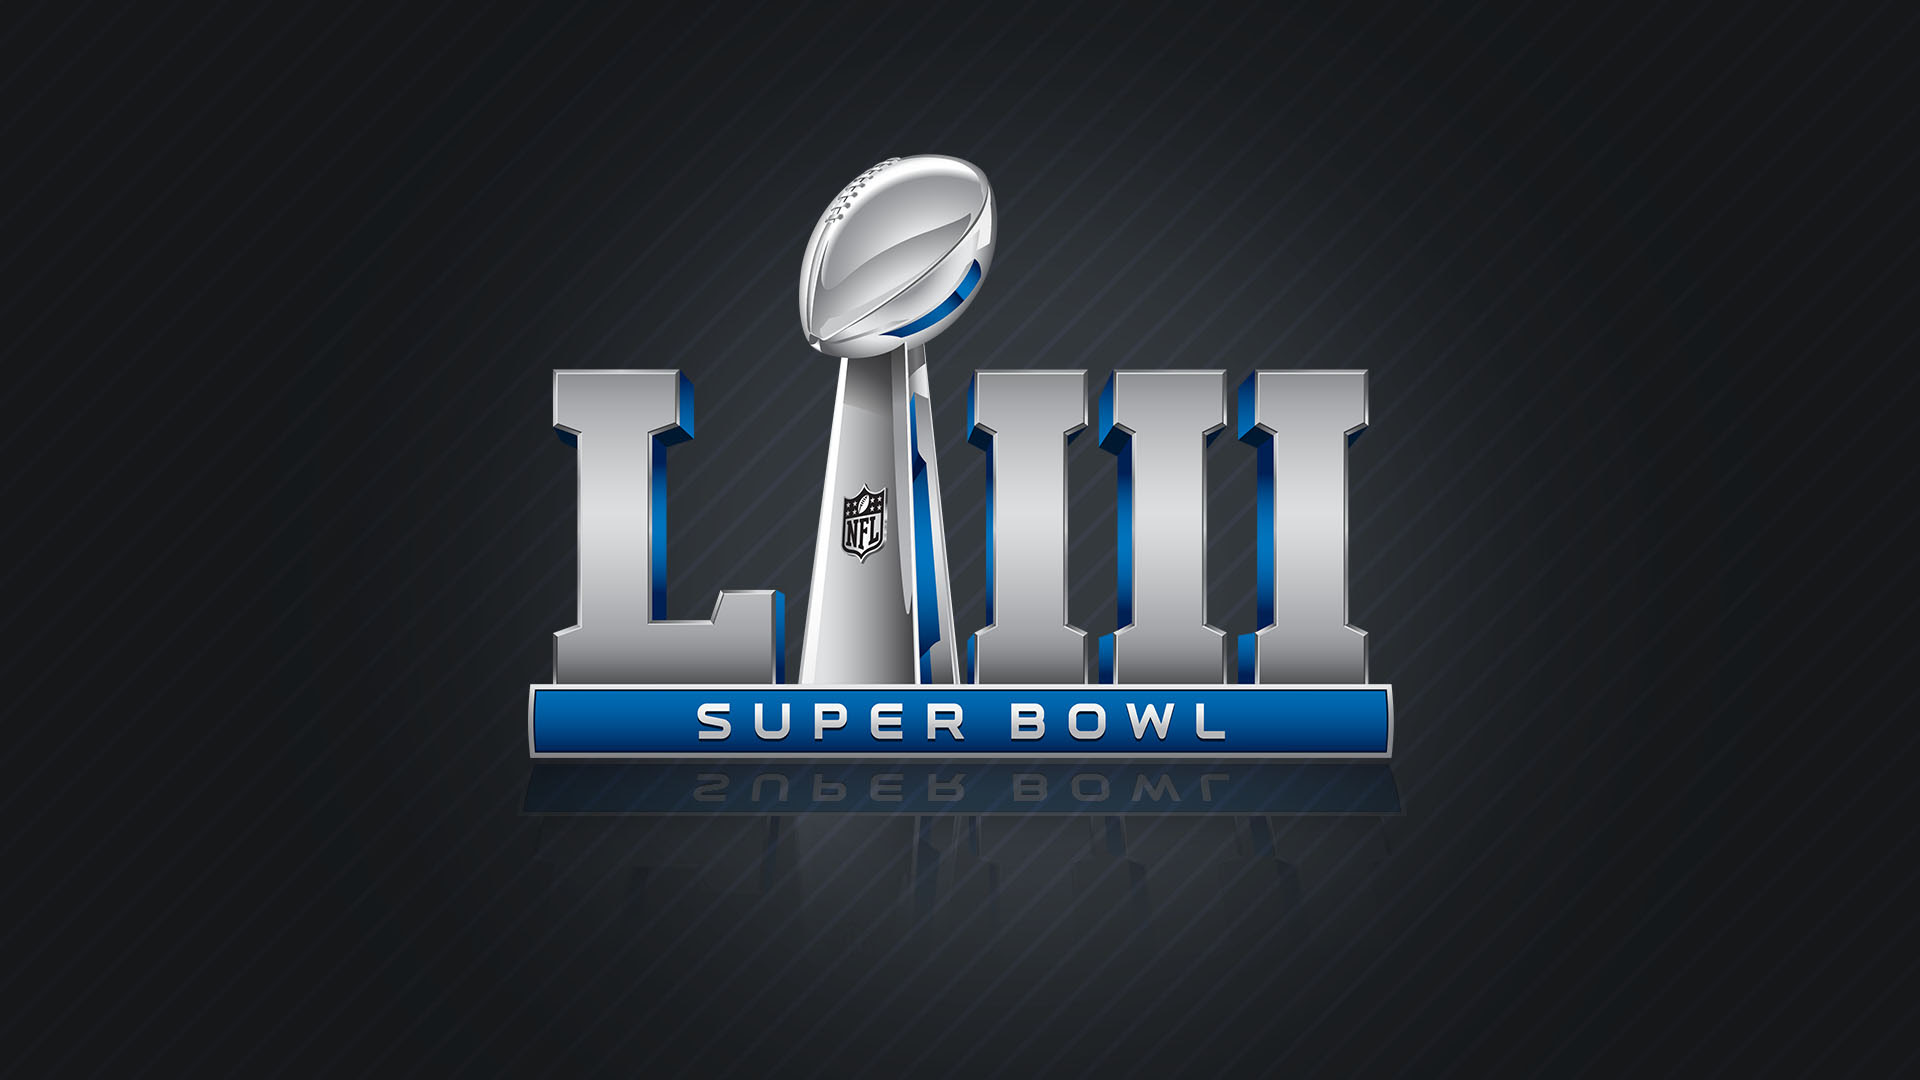 Super Bowl logo has become 'corporate, soulless' like 'NFL itself'